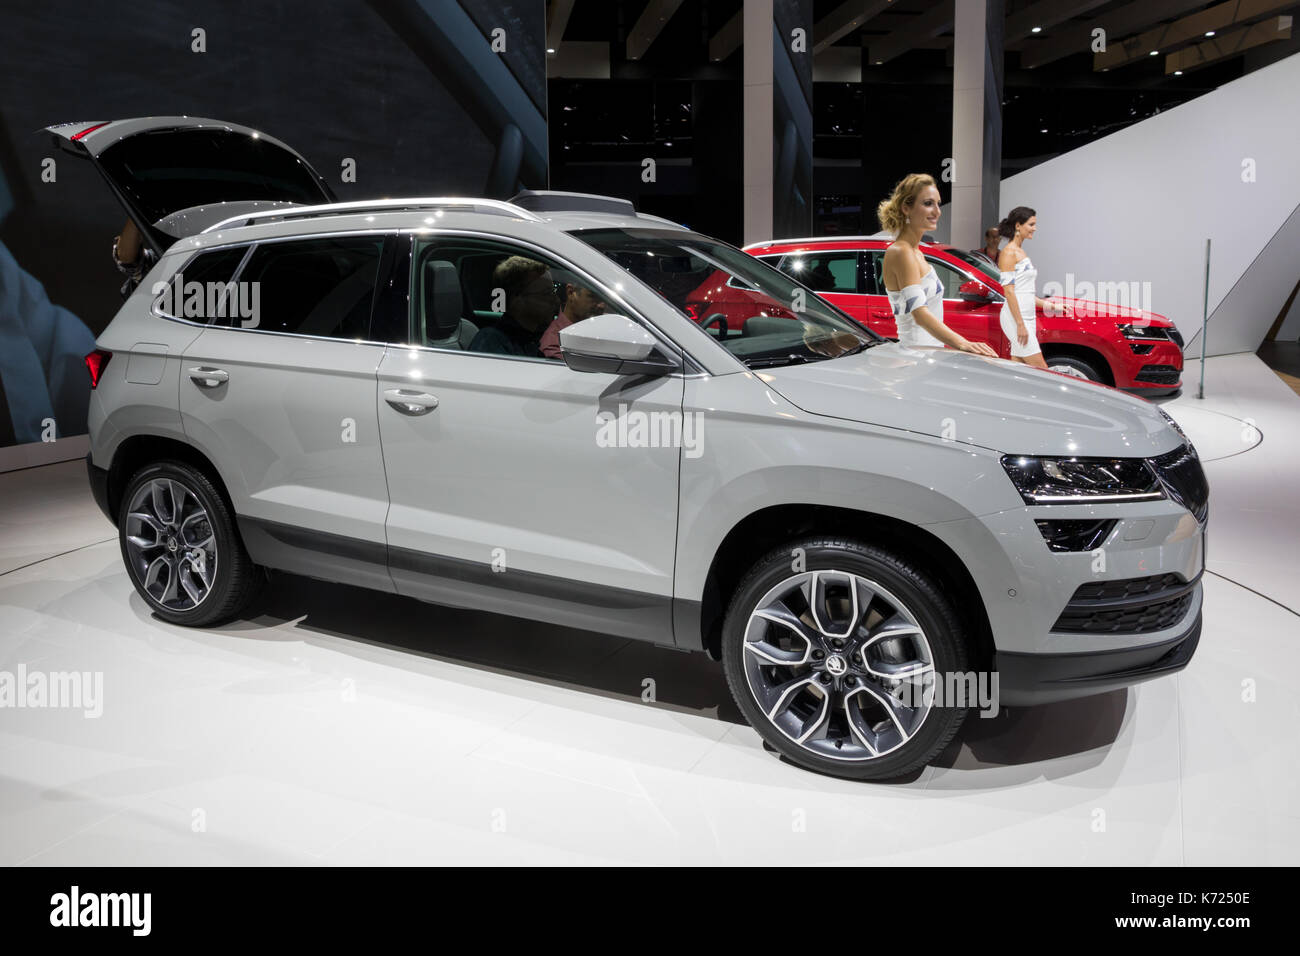 skoda karoq stock photos skoda karoq stock images alamy. Black Bedroom Furniture Sets. Home Design Ideas